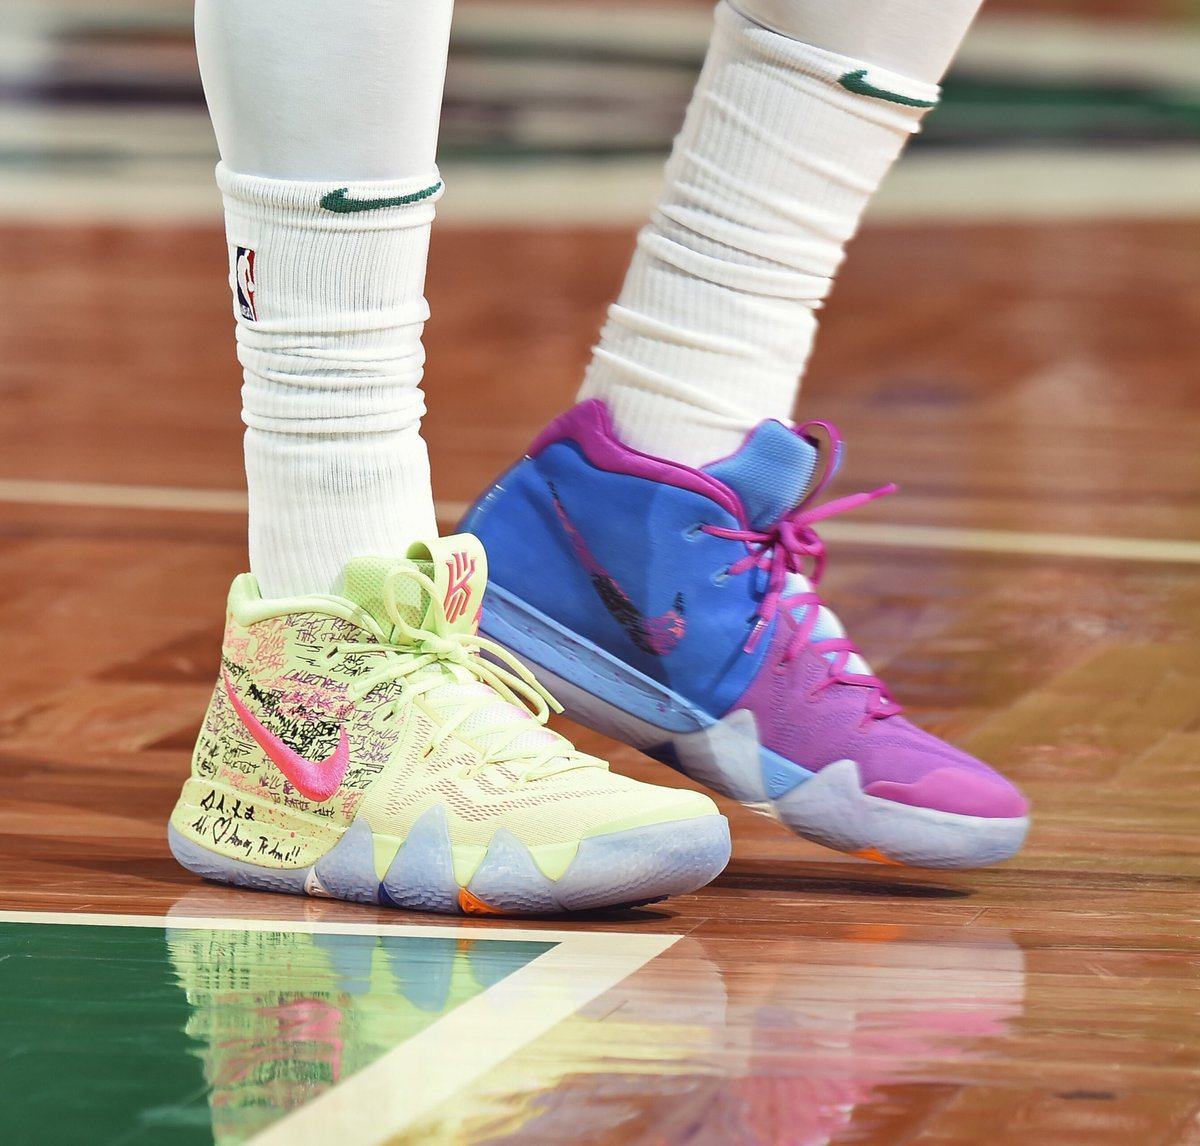 size 40 06cea 8eacc What Pros Wear: Kyrie Irving's Nike Kyrie 4 Shoes - What ...